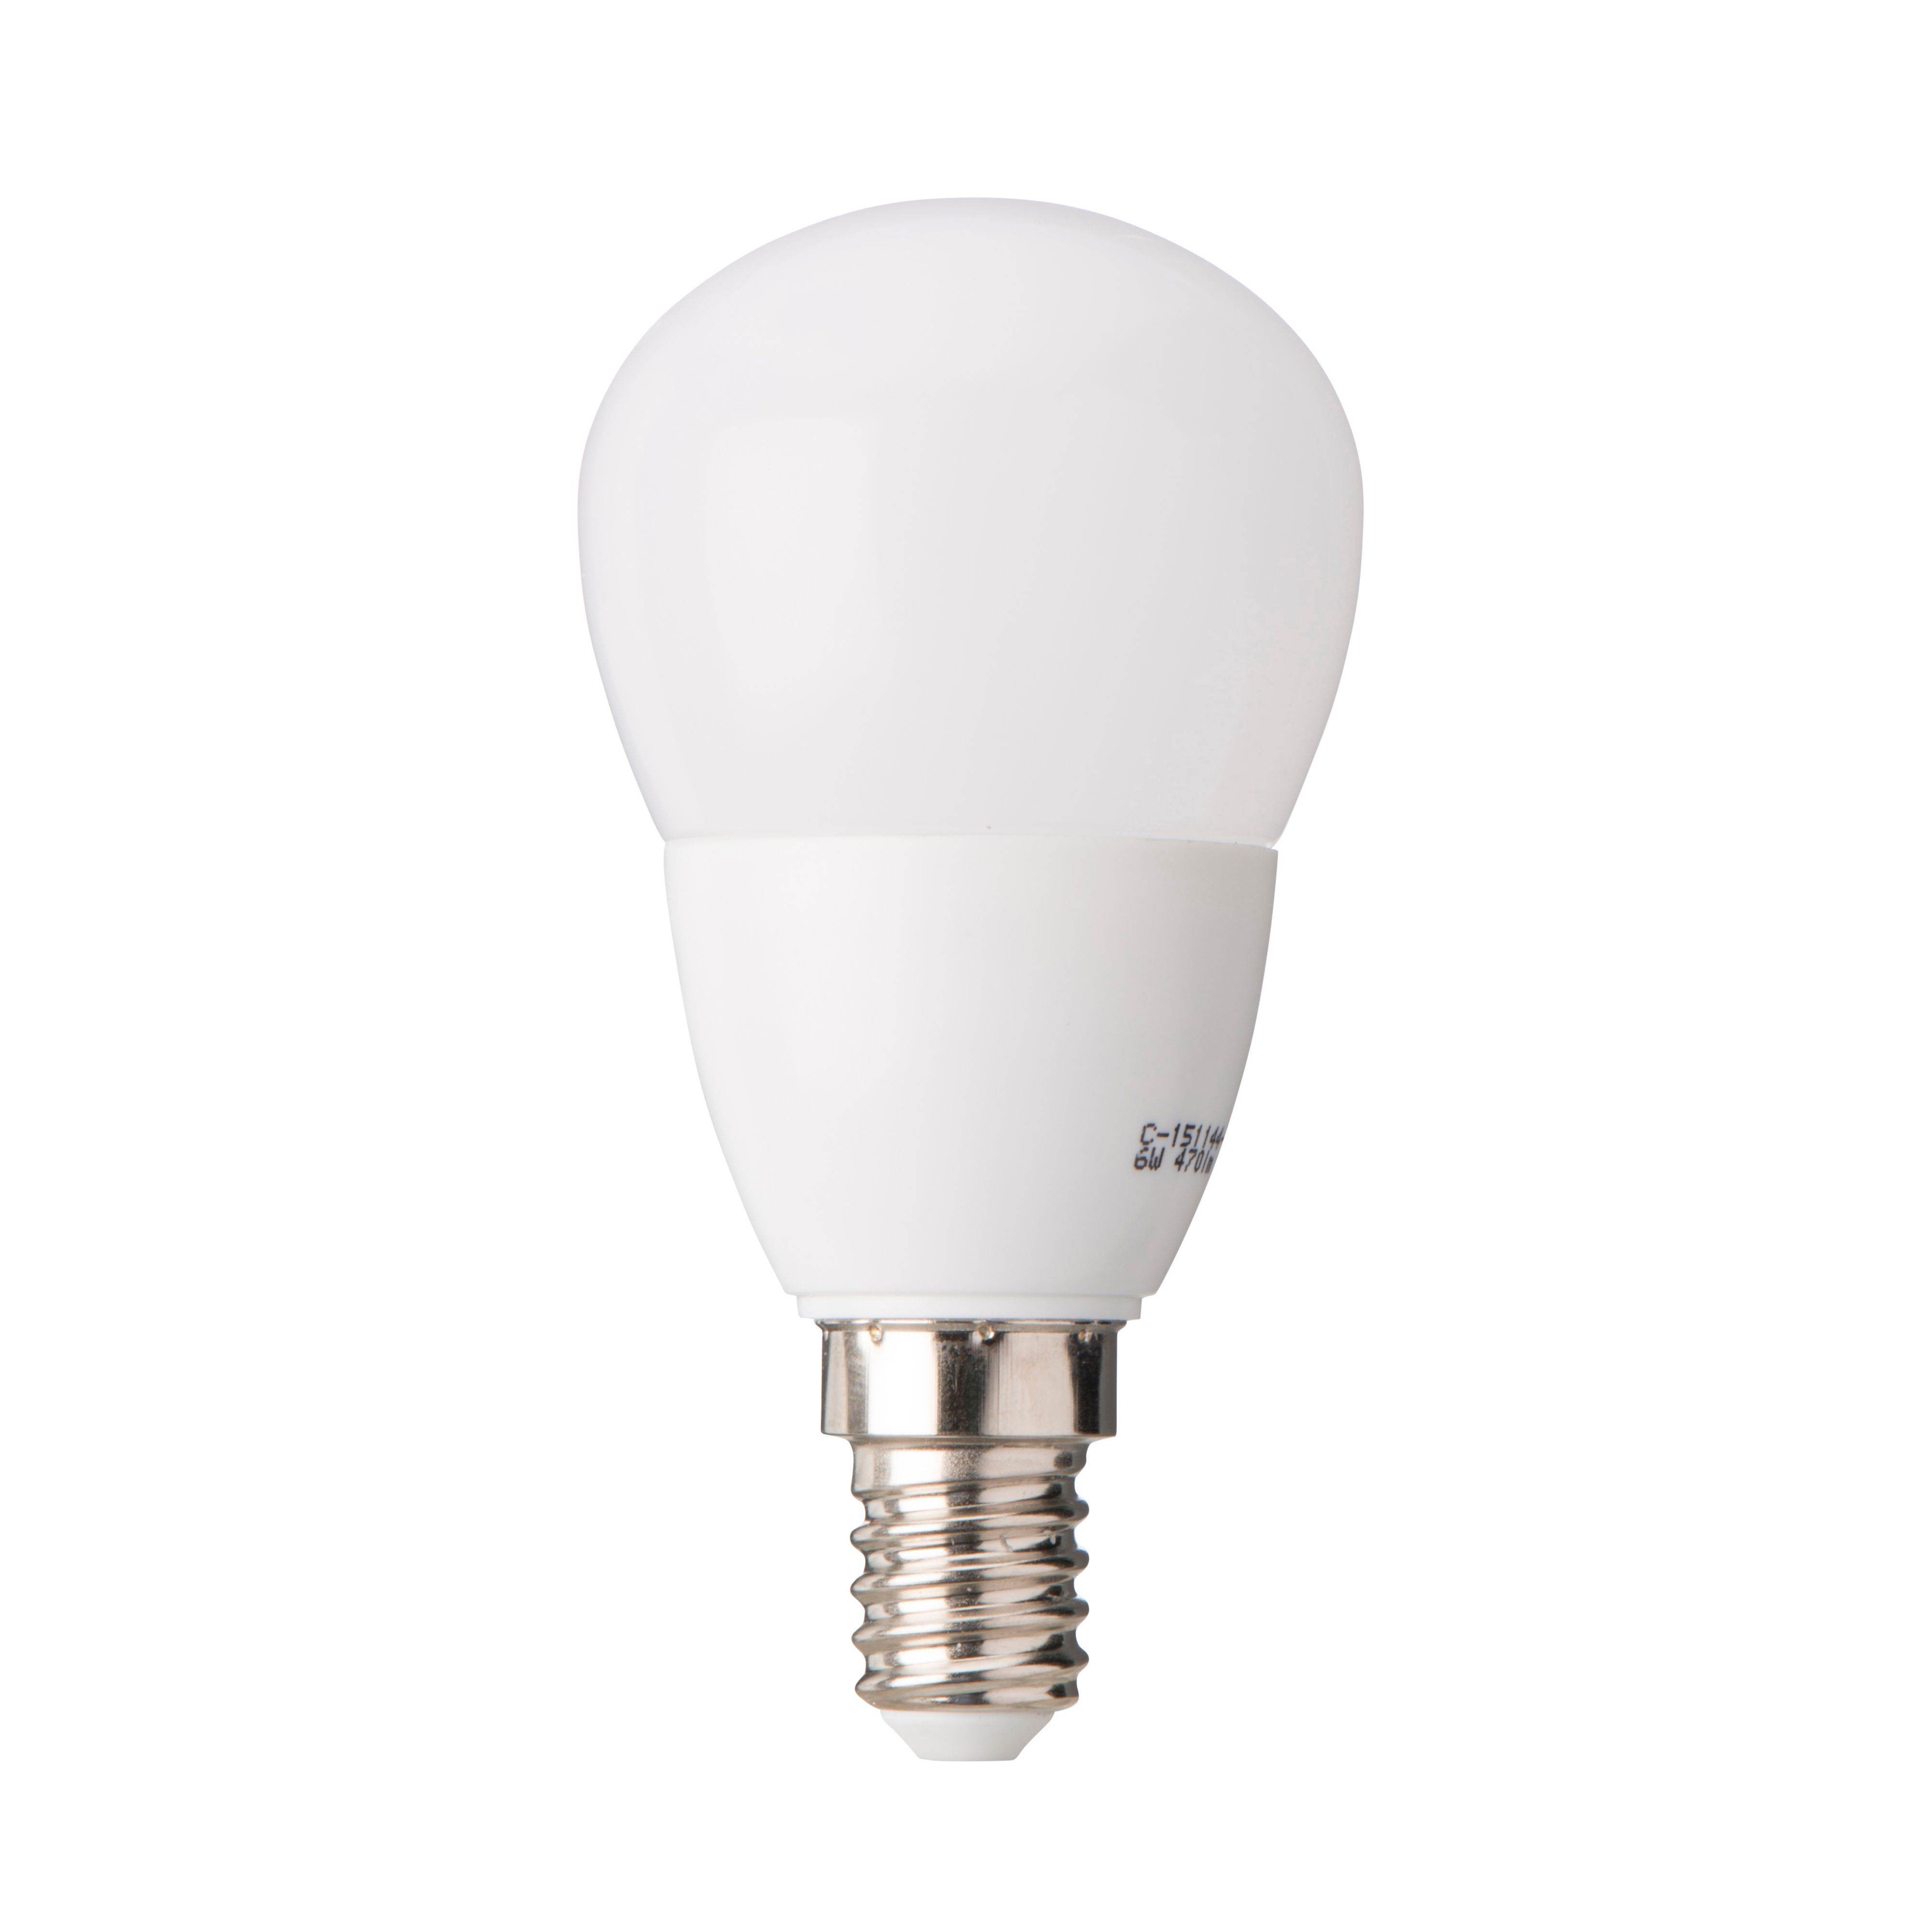 diall e14 470lm led dimmable ball light bulb departments diy at b q. Black Bedroom Furniture Sets. Home Design Ideas